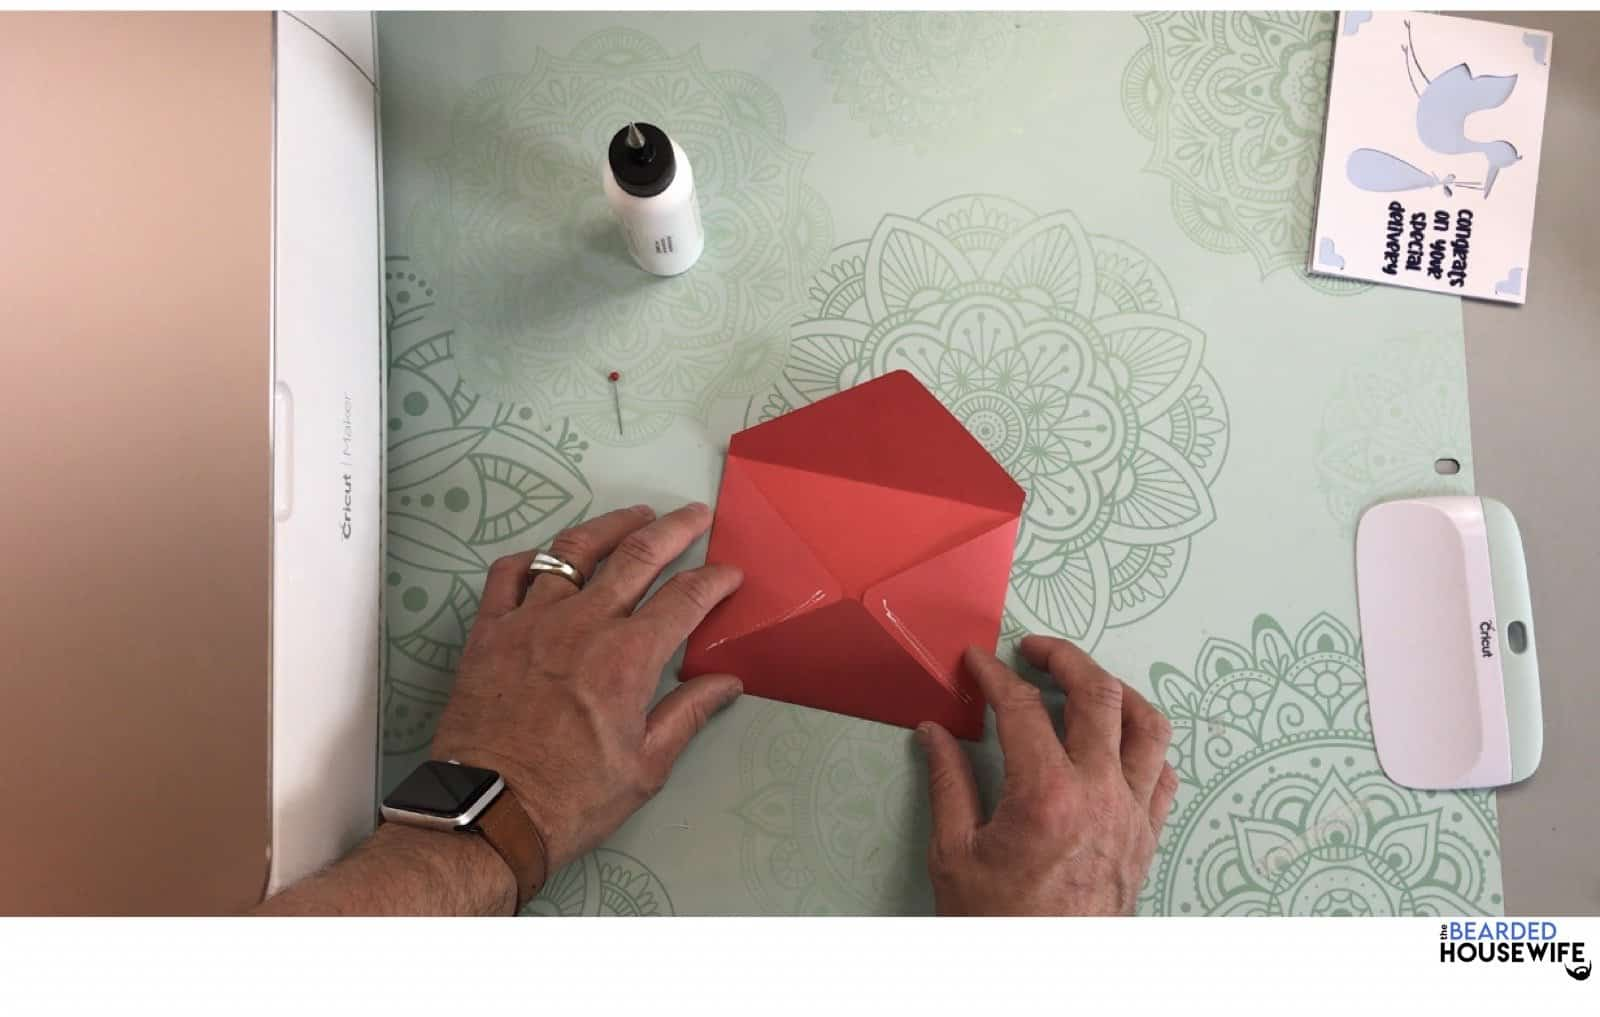 bring the bottom flap up and press to form the envelope